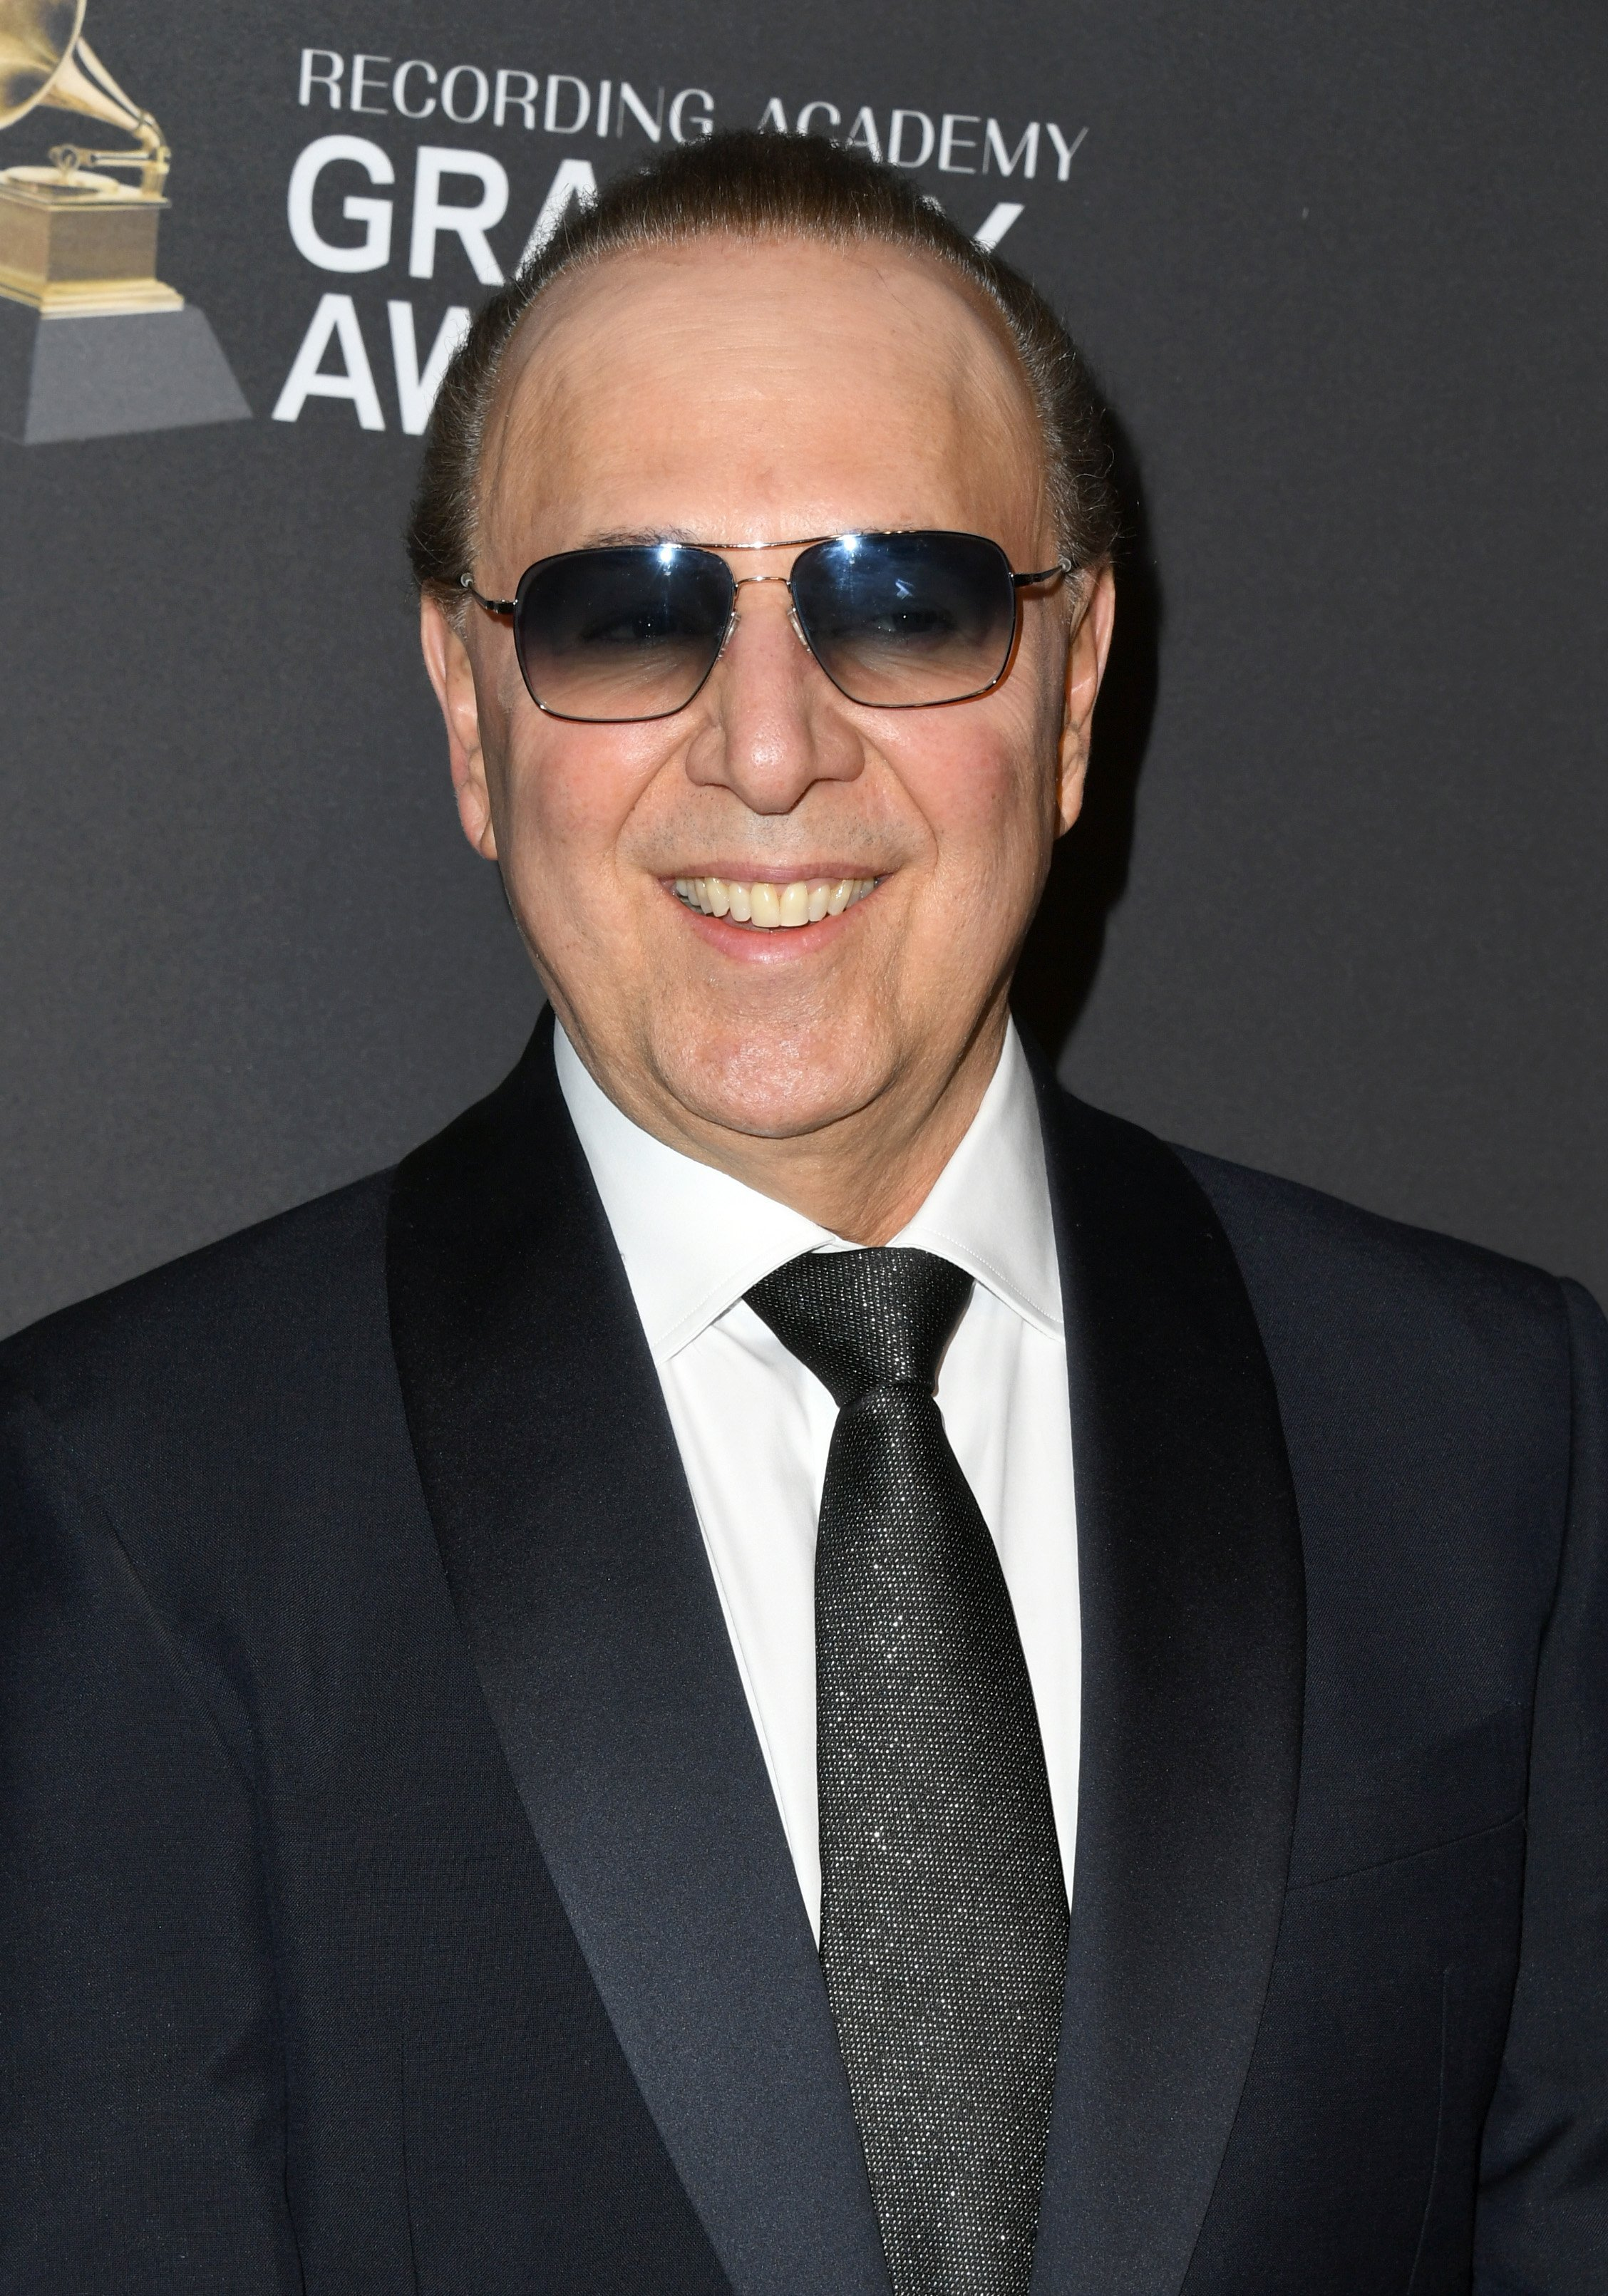 Tommy Mottola attends The Recording Academy And Clive Davis' 2019 Pre-GRAMMY Gala at The Beverly Hilton Hotel on February 9, 2019, in Beverly Hills, California. | Source: Getty Images.